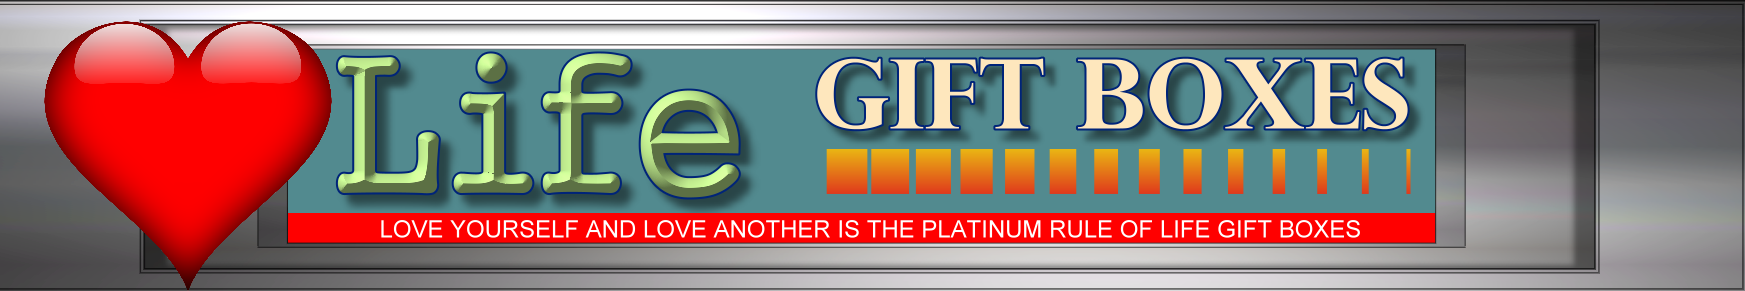 Life Gift Boxes